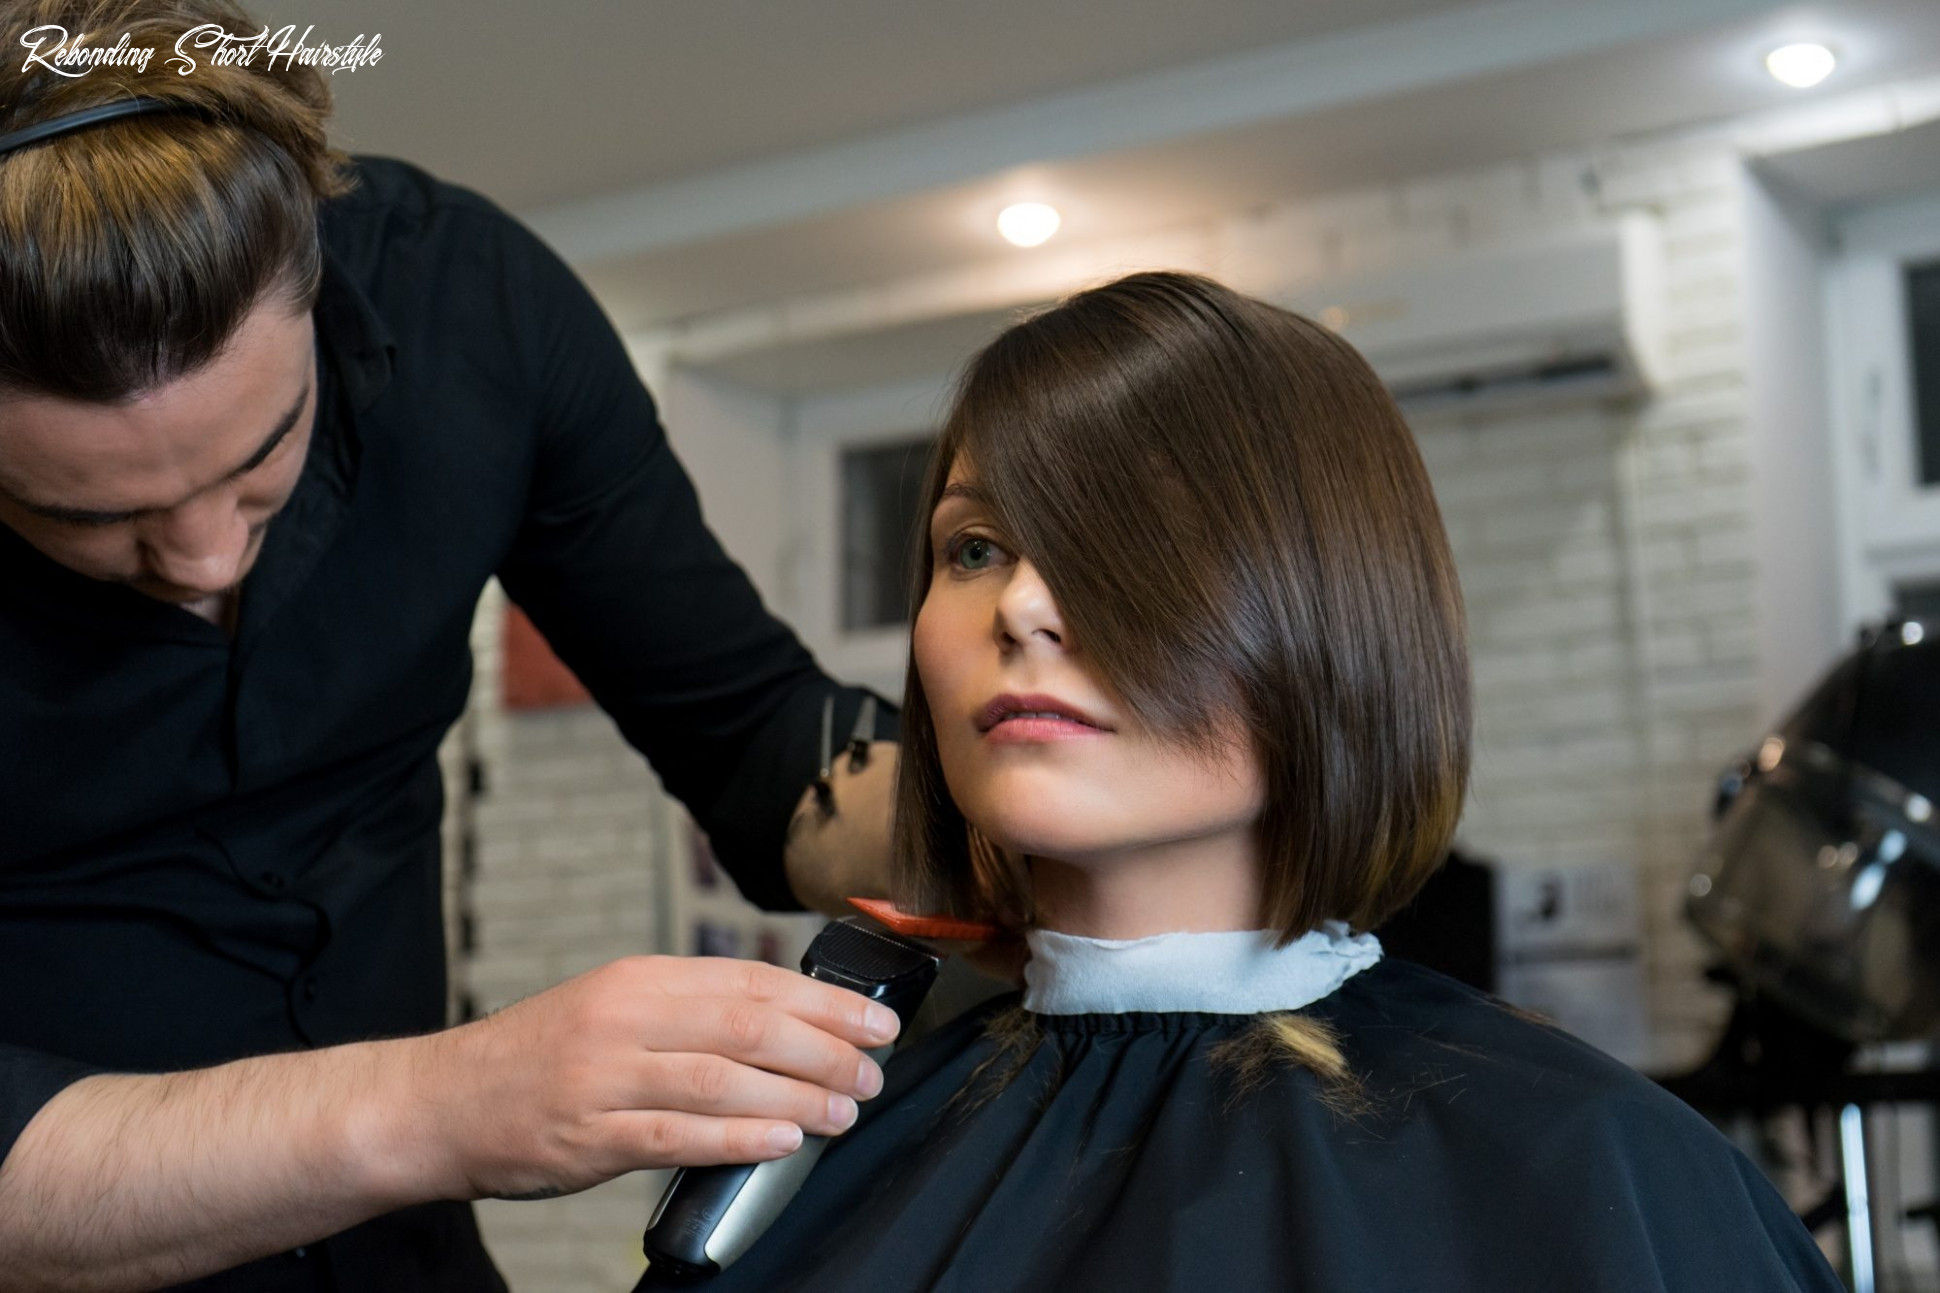 Rebonded Short Hair: What You Need to Know Before Getting One